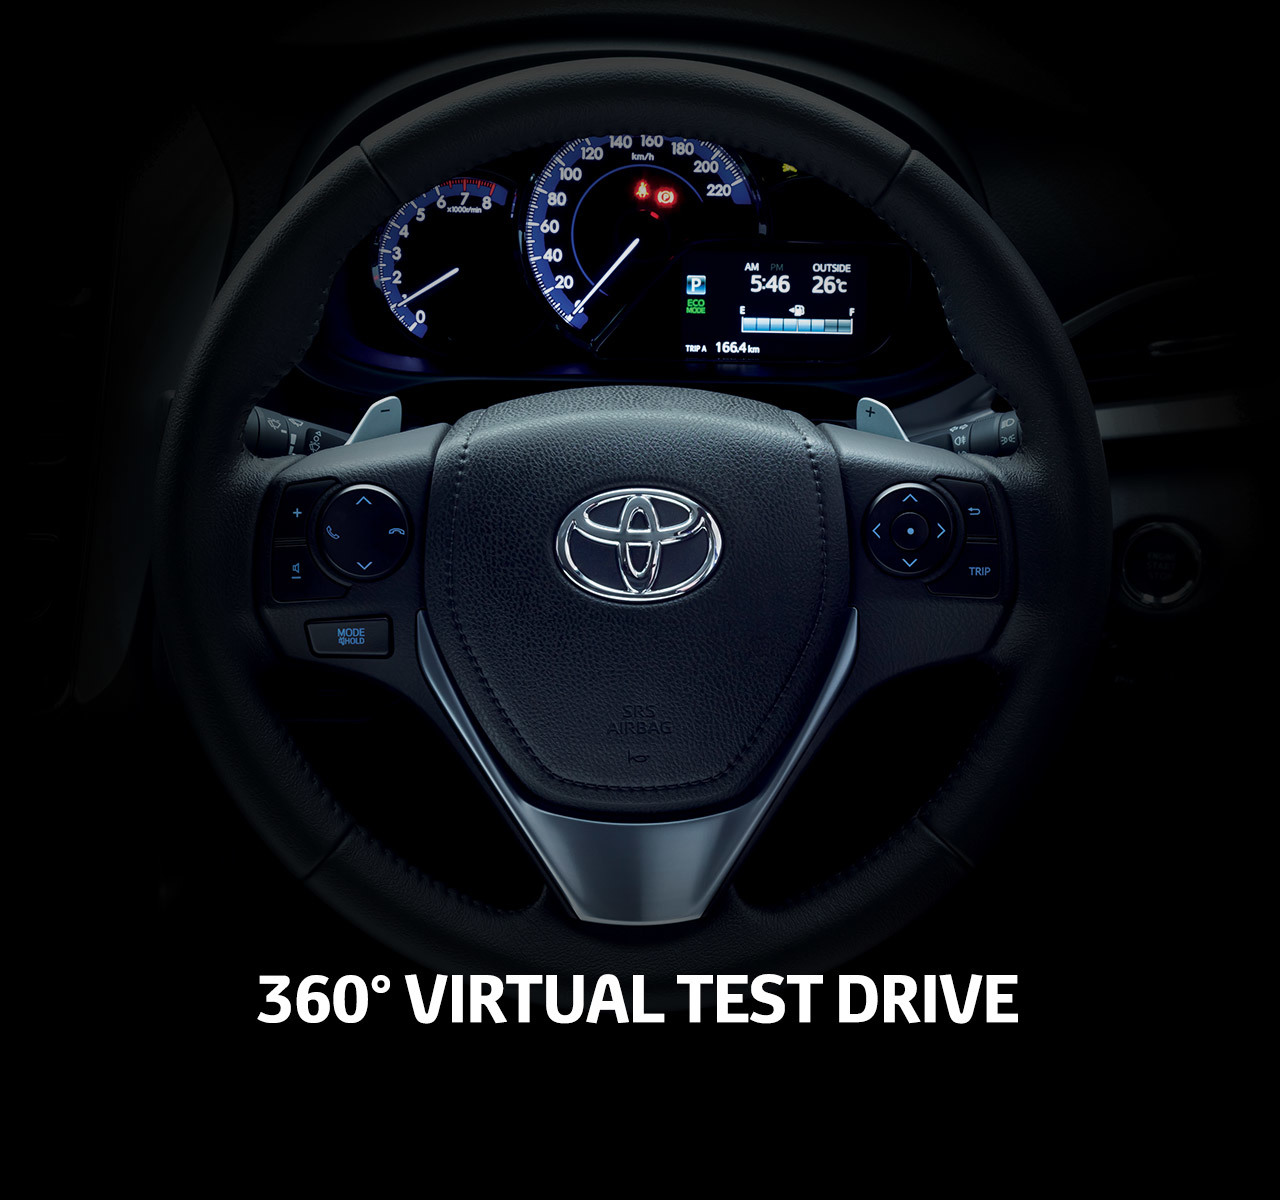 Toyota Malaysia - All About The #Drive!